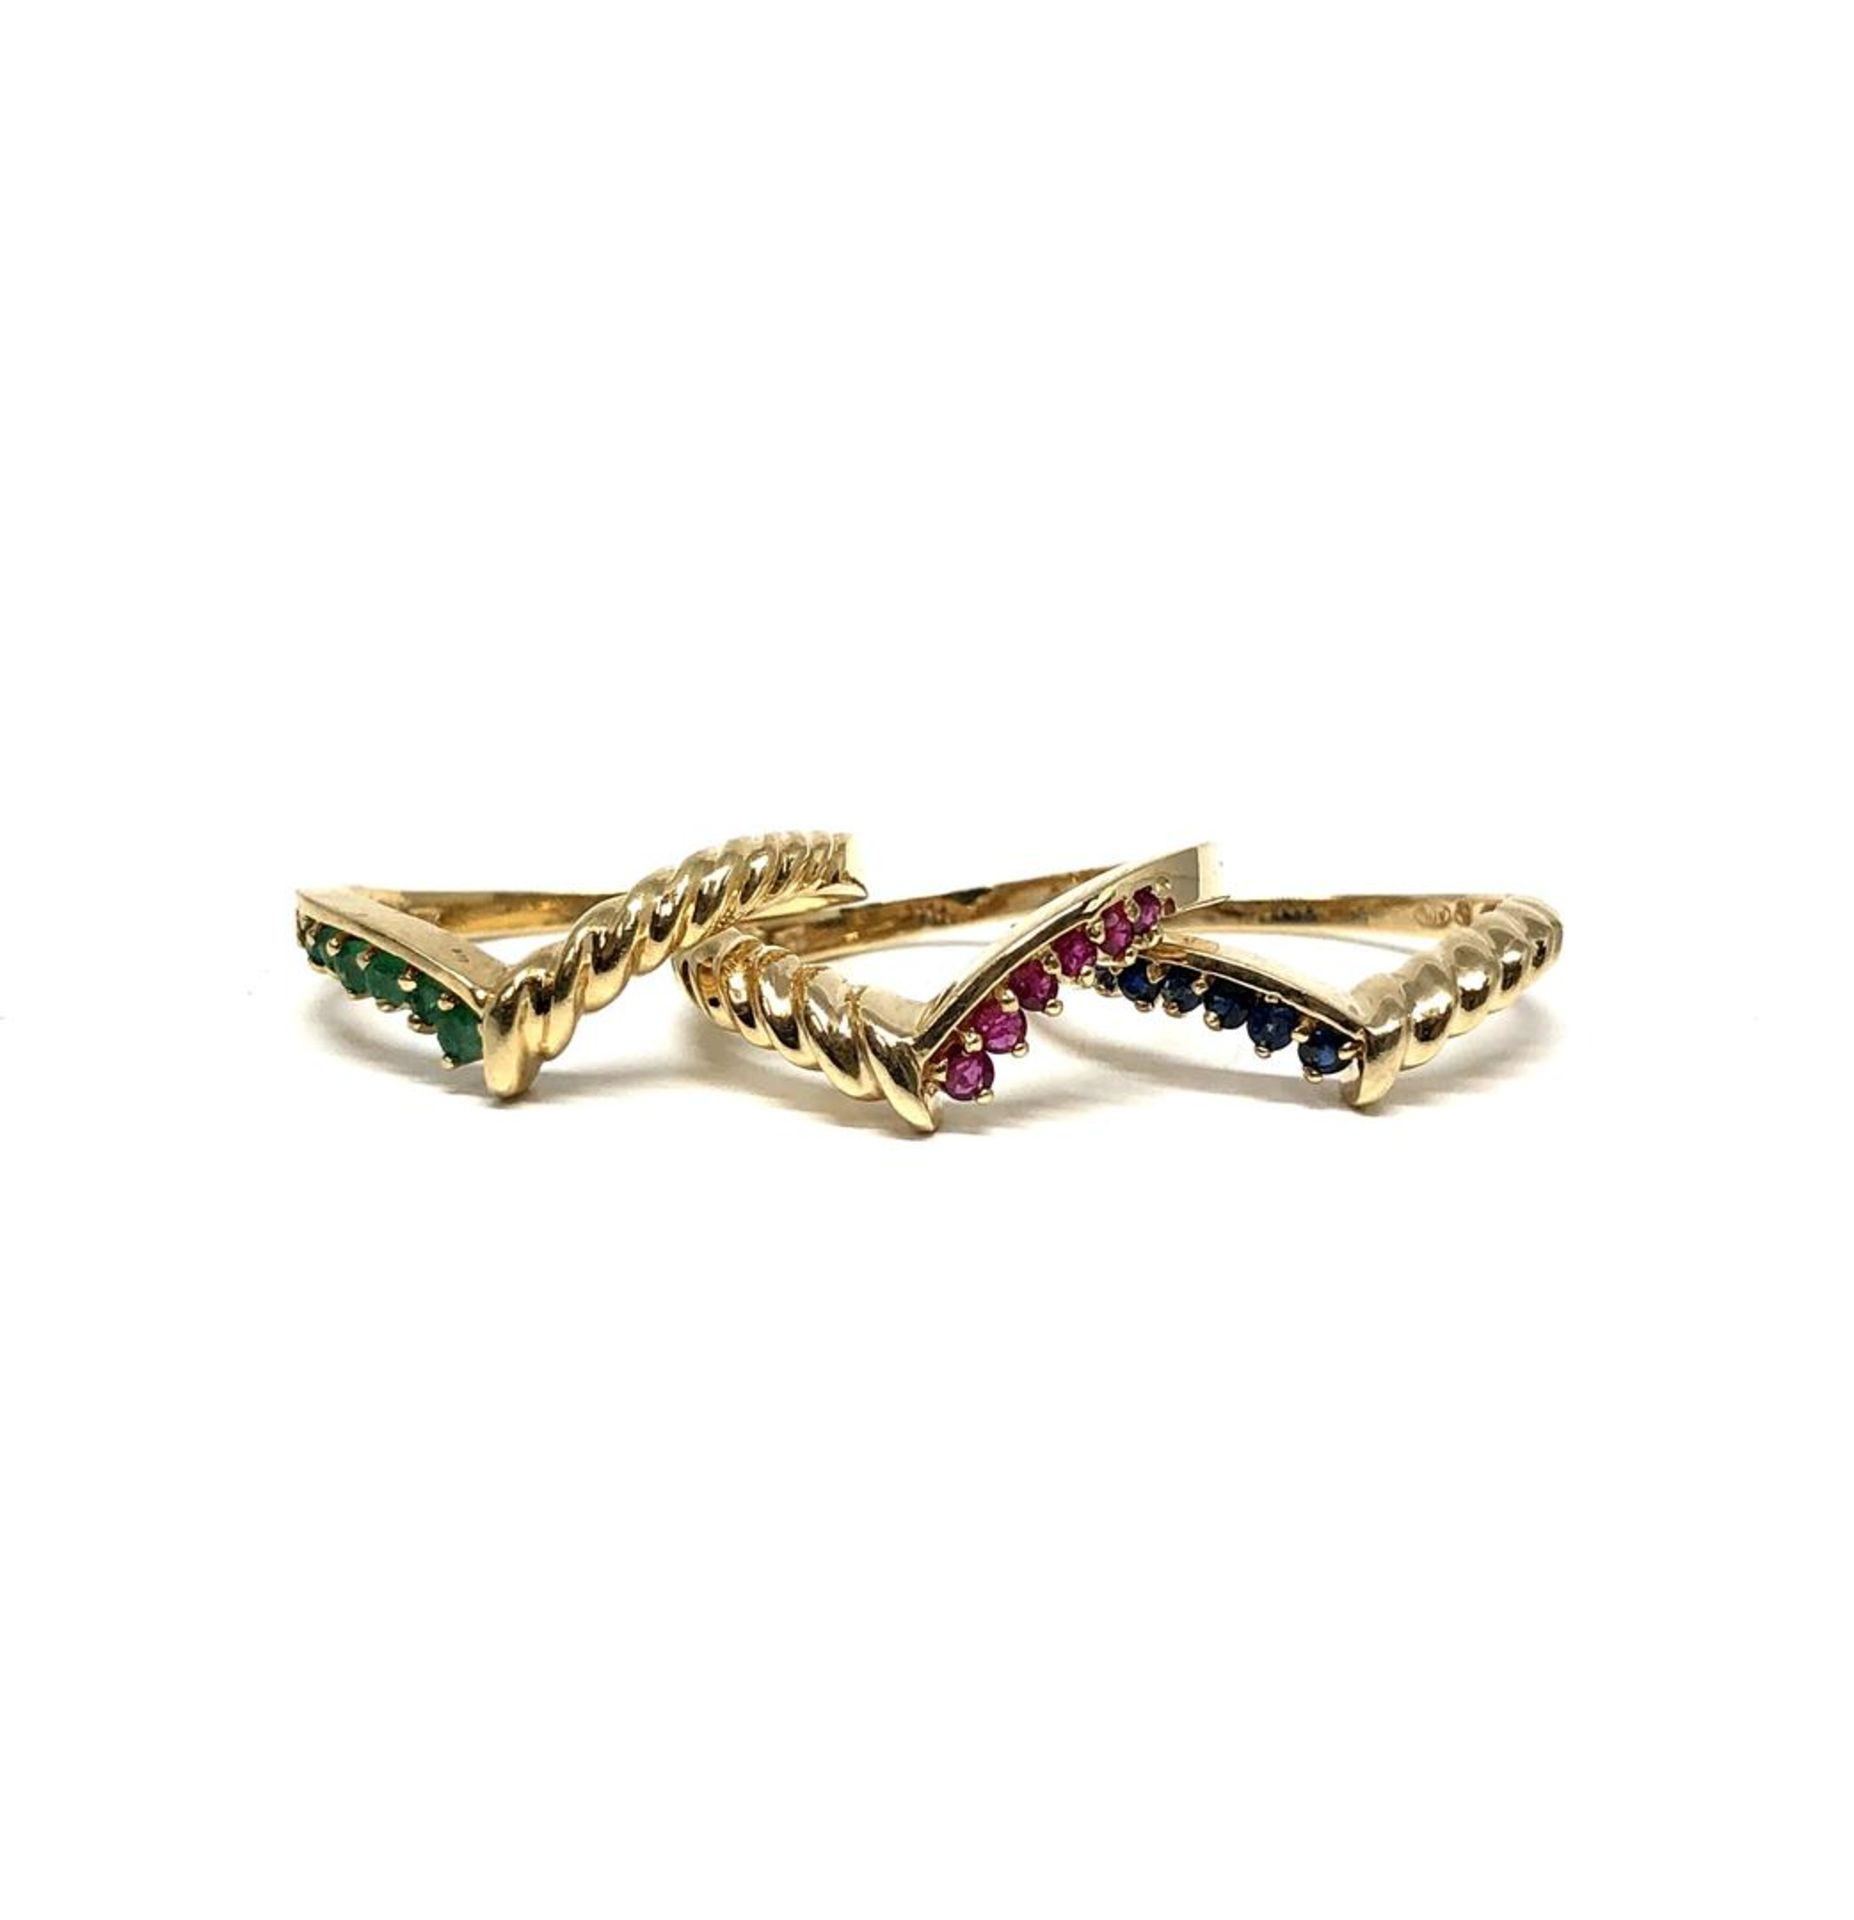 0.69 ctw Round Brilliant Emerald Rings - 14KT Yellow Gold - Image 4 of 4